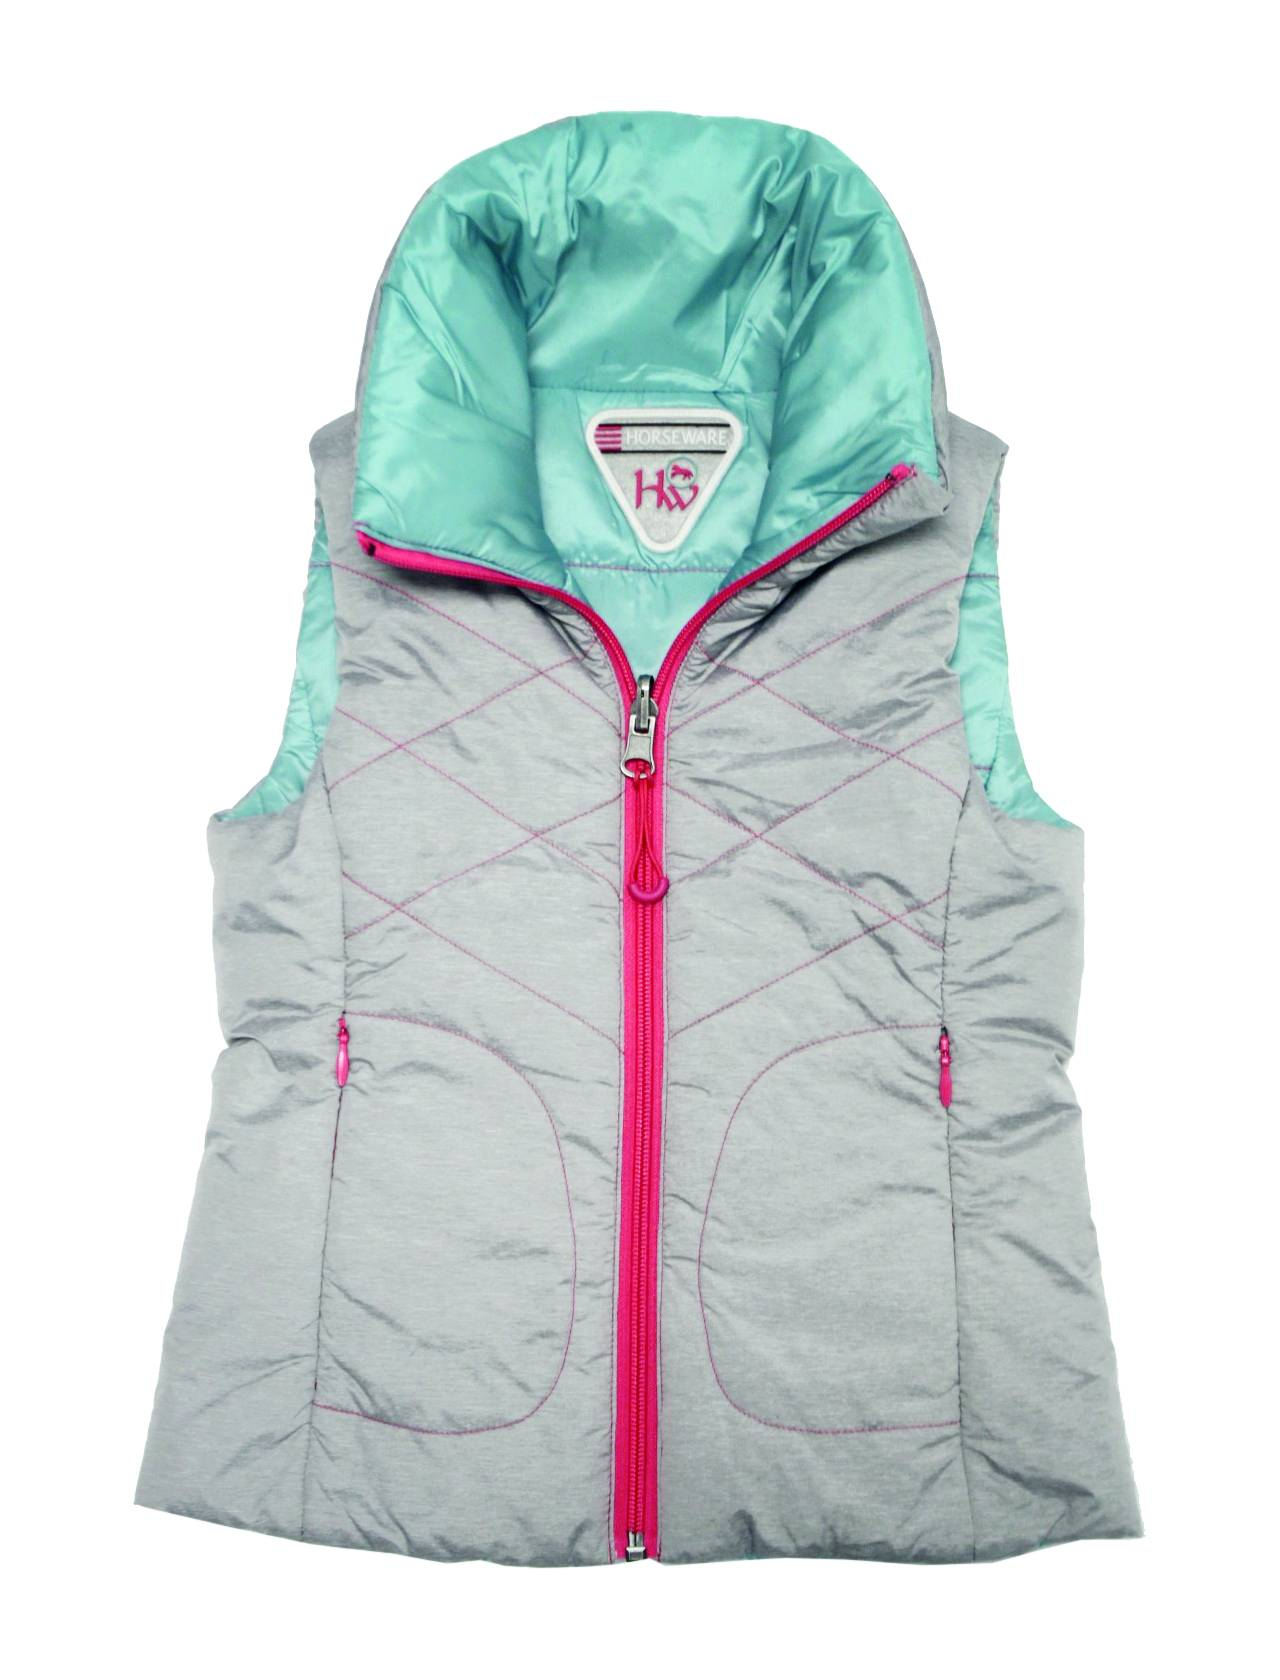 Horseware Girls Reversible Gilet